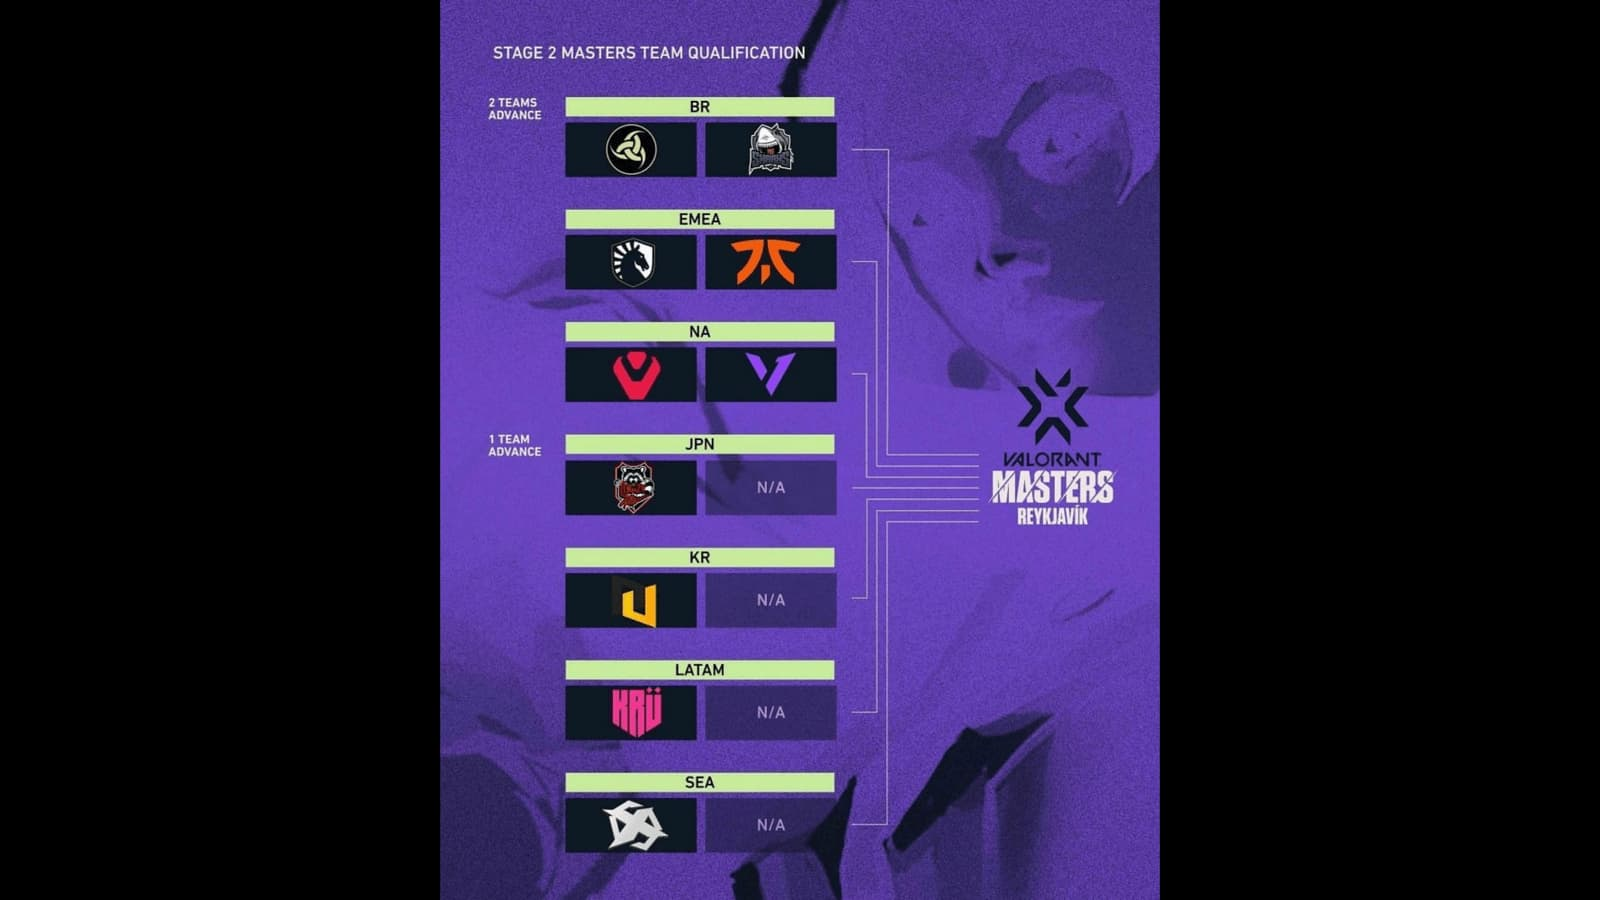 VCT Stage 2 Masters Iceland Schedule